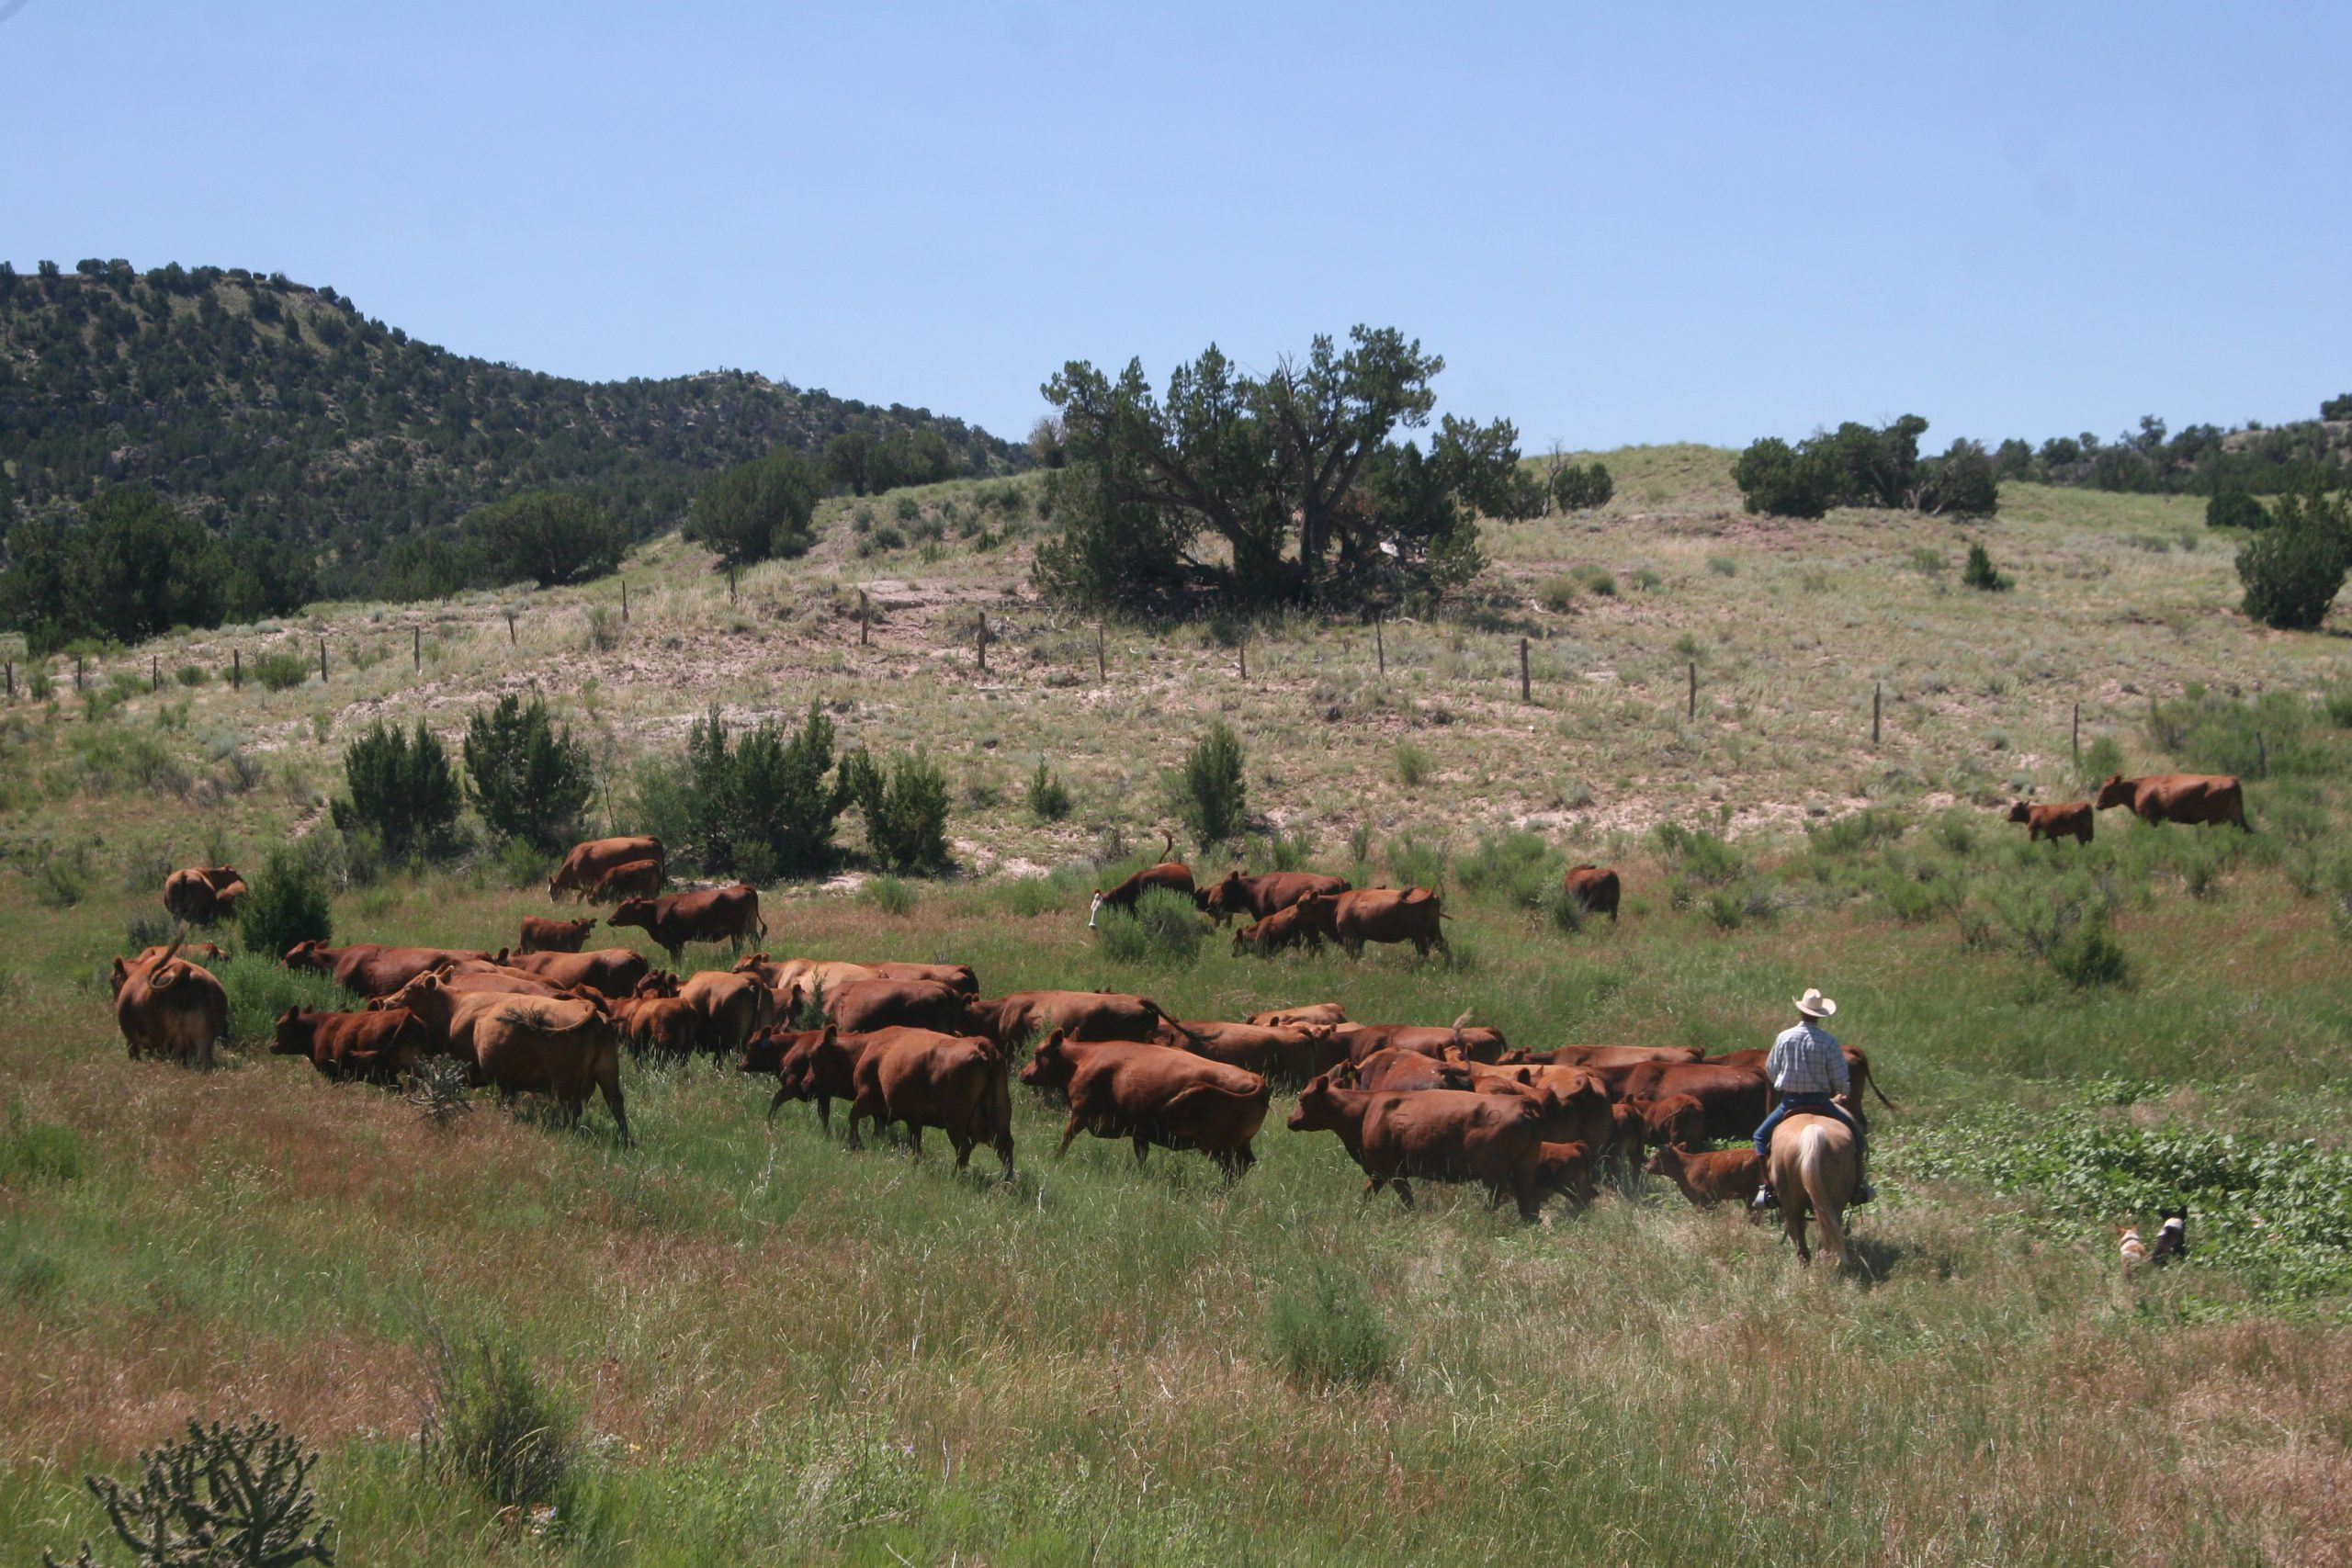 Rancher Steve Wooten herds cattle on his ranch in southeastern Colorado near the town of Kim. The county is the largest in the state and one of the least populated.